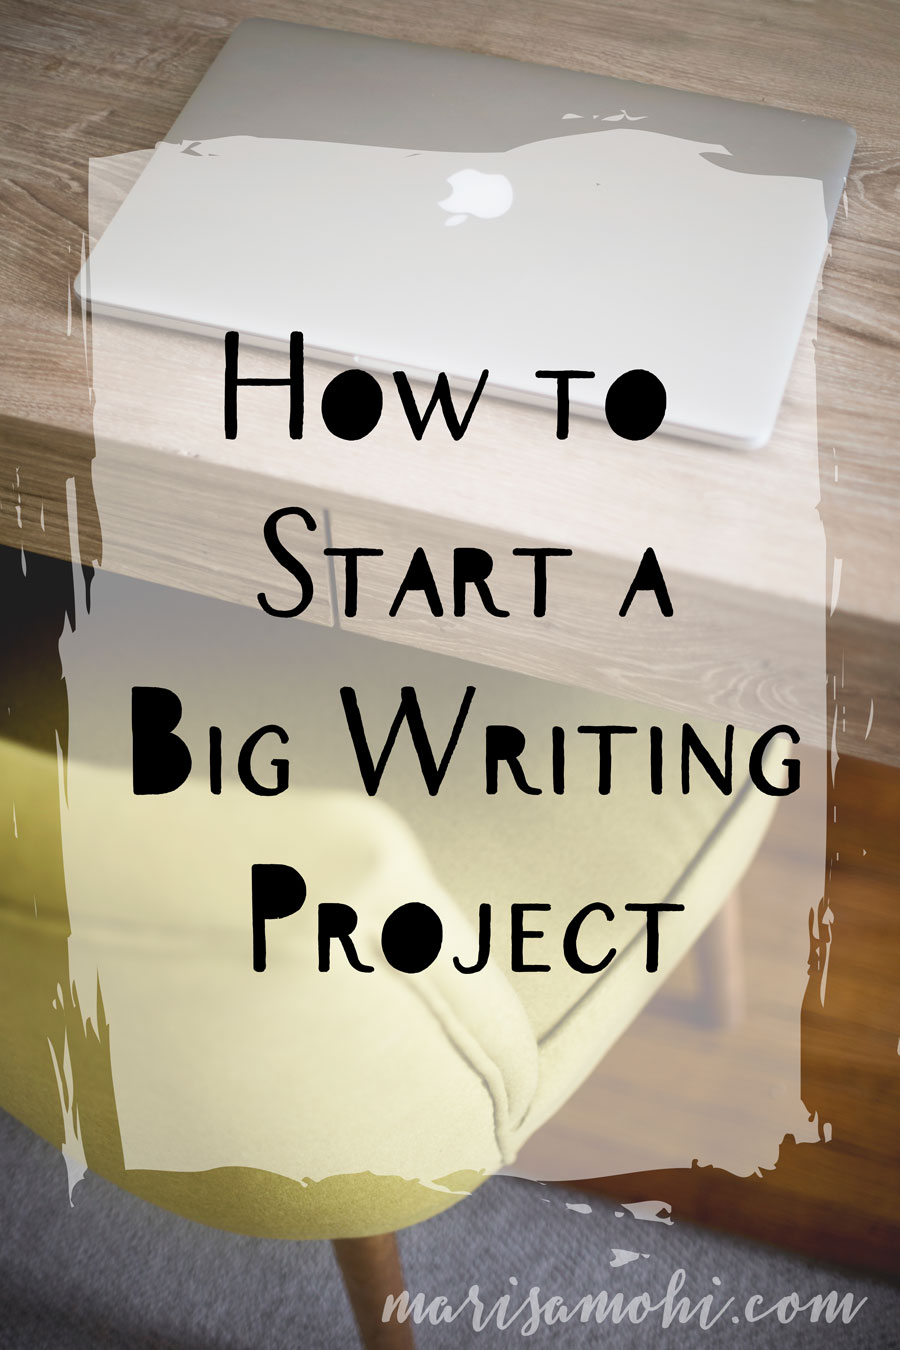 How to Start a Big Writing Project